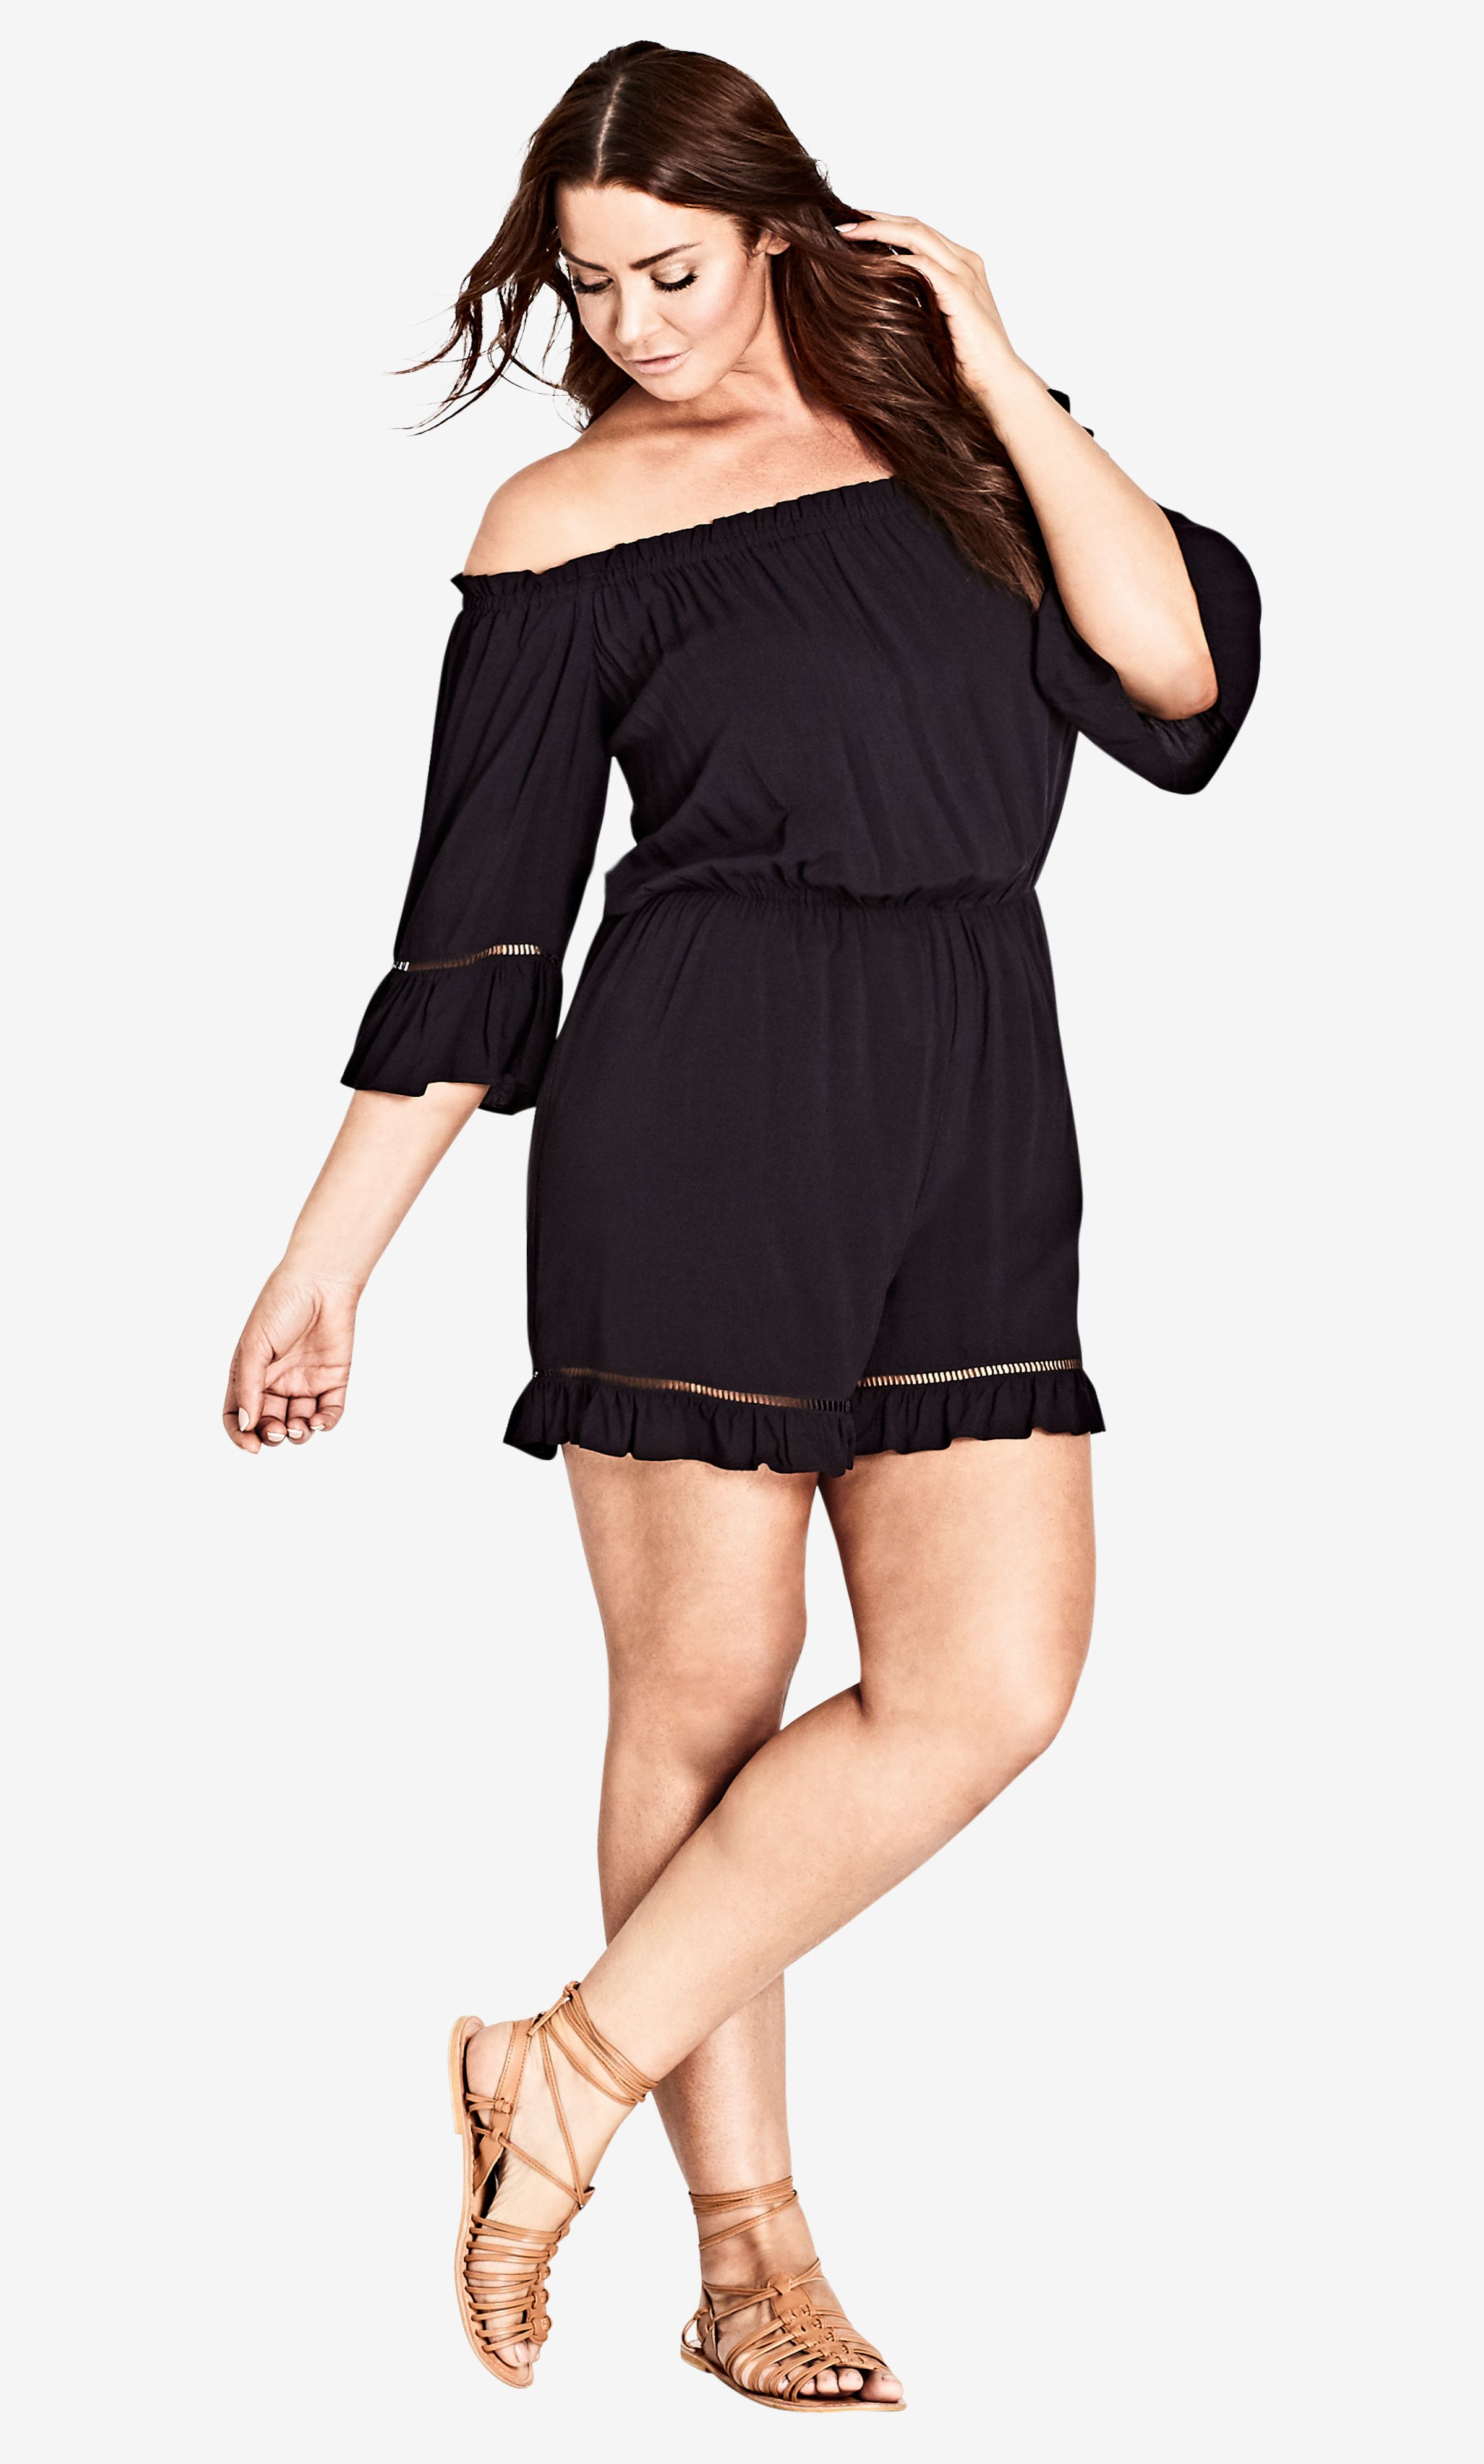 new products for strong packing reasonable price Black Off Shoulder Playsuit | A Curvy Girls Guide To Style